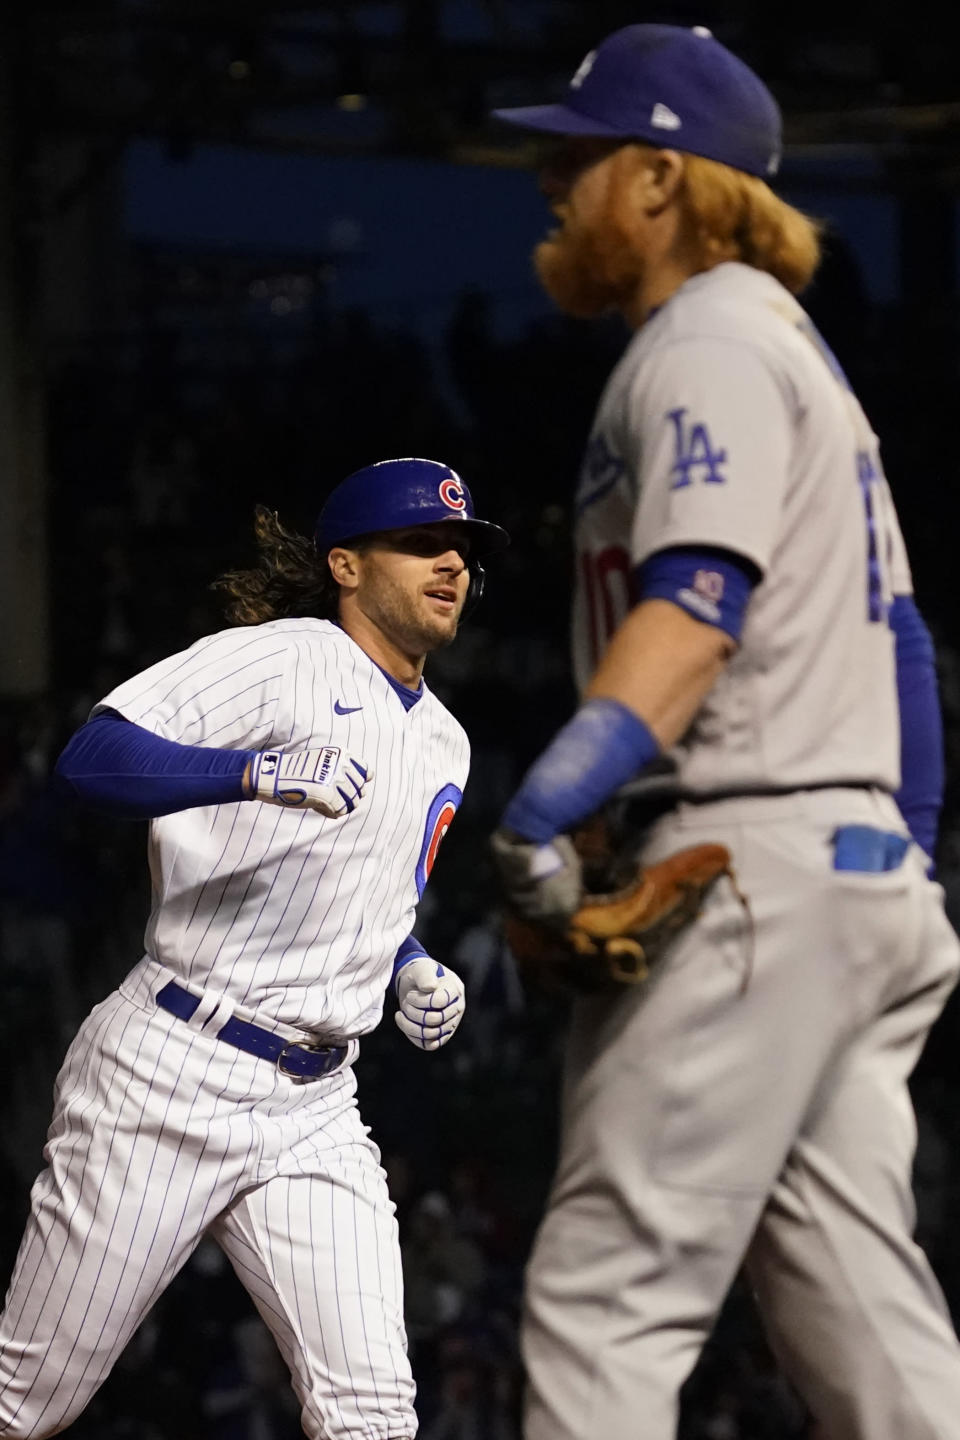 Chicago Cubs' Jake Marisnick, left, rounds the bases after his two-run home run as Los Angeles Dodgers third baseman Justin Turner looks at the score board during the fifth inning of a baseball game in Chicago, Wednesday, May 5, 2021. (AP Photo/Nam Y. Huh)